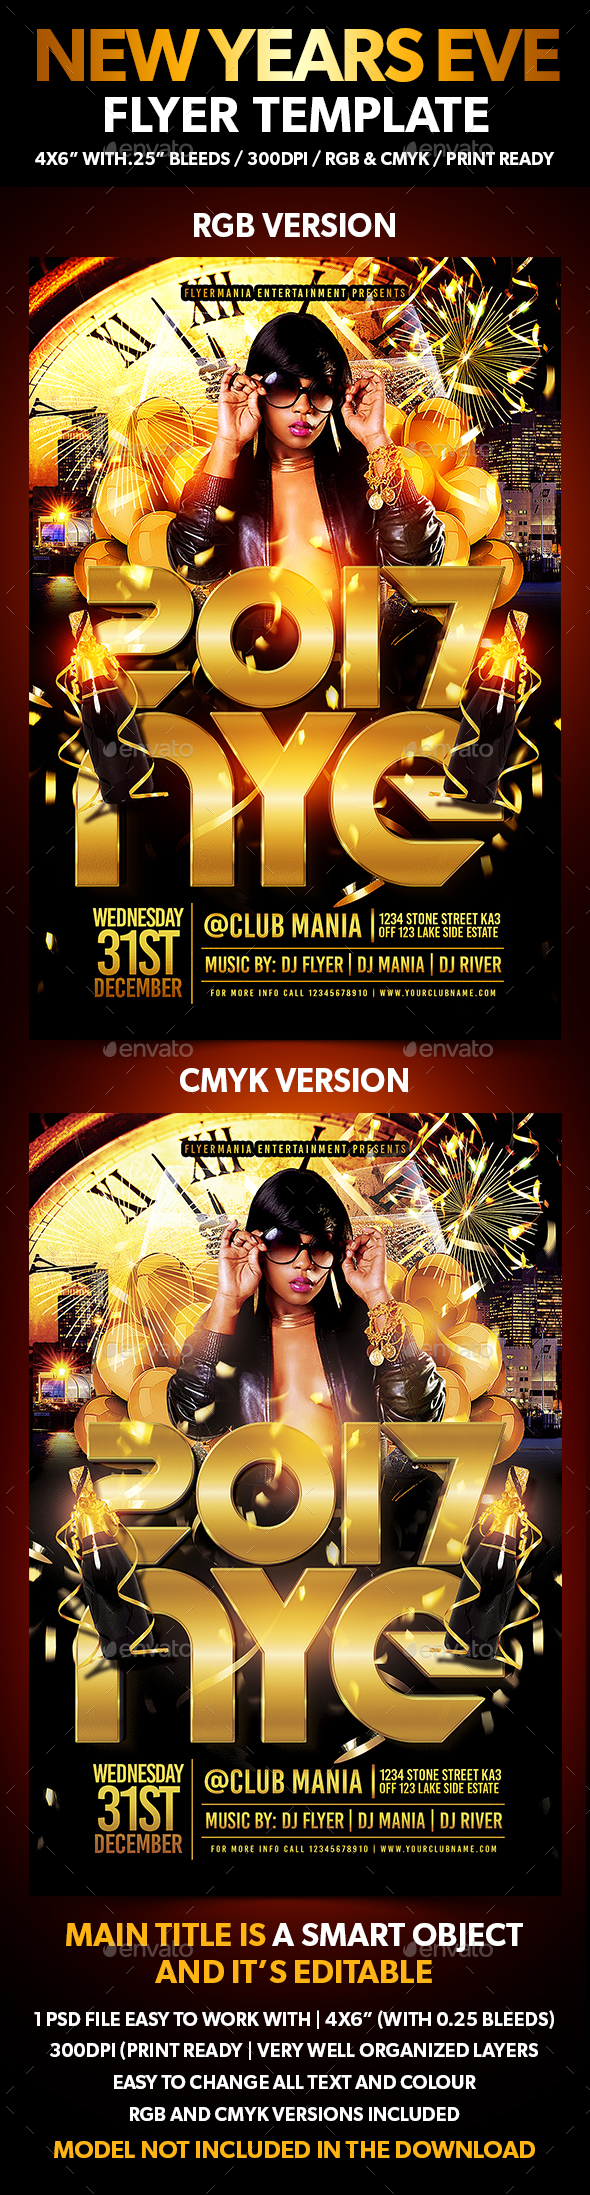 New Years Eve Flyer Template - Flyers Print Templates